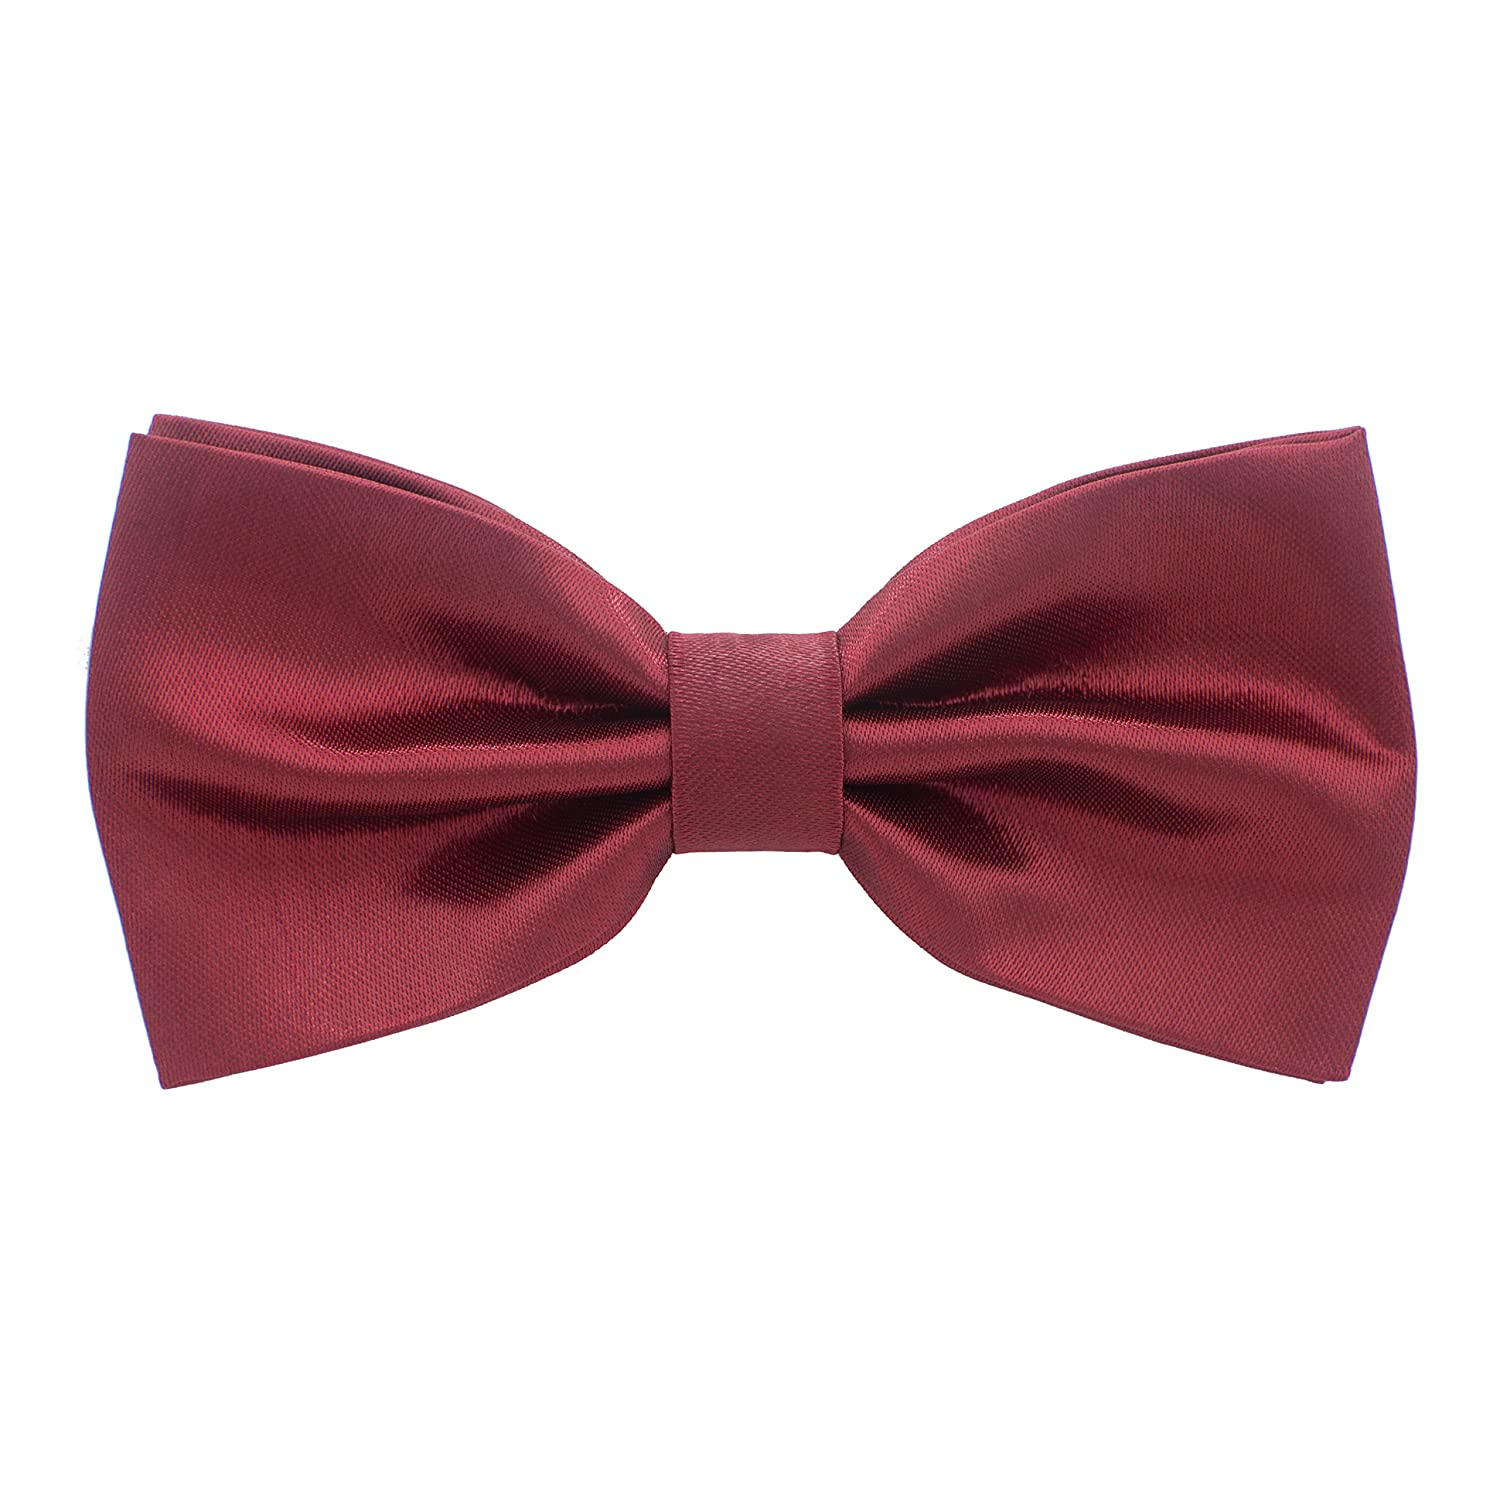 Satin Classic Pre-Tied Bow Tie Formal Solid Tuxedo, by Bow Tie House (Medium, Dark Red) 09564